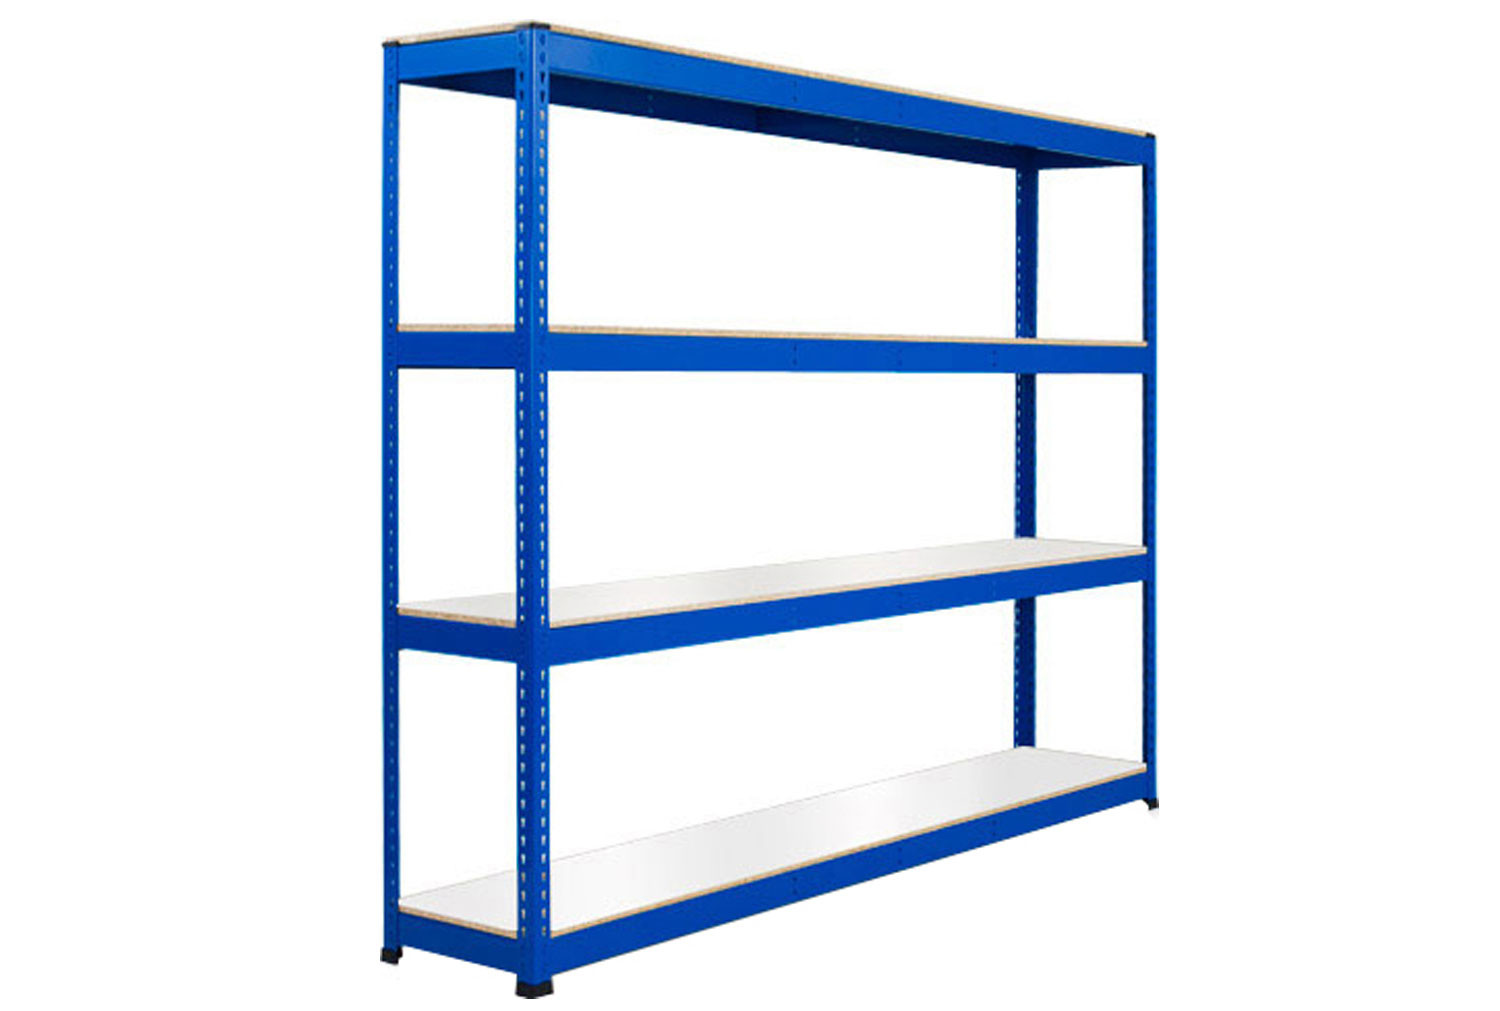 Rapid 1 Heavy Duty Shelving With 4 Melamine Shelves 2440wx1980h (Blue)